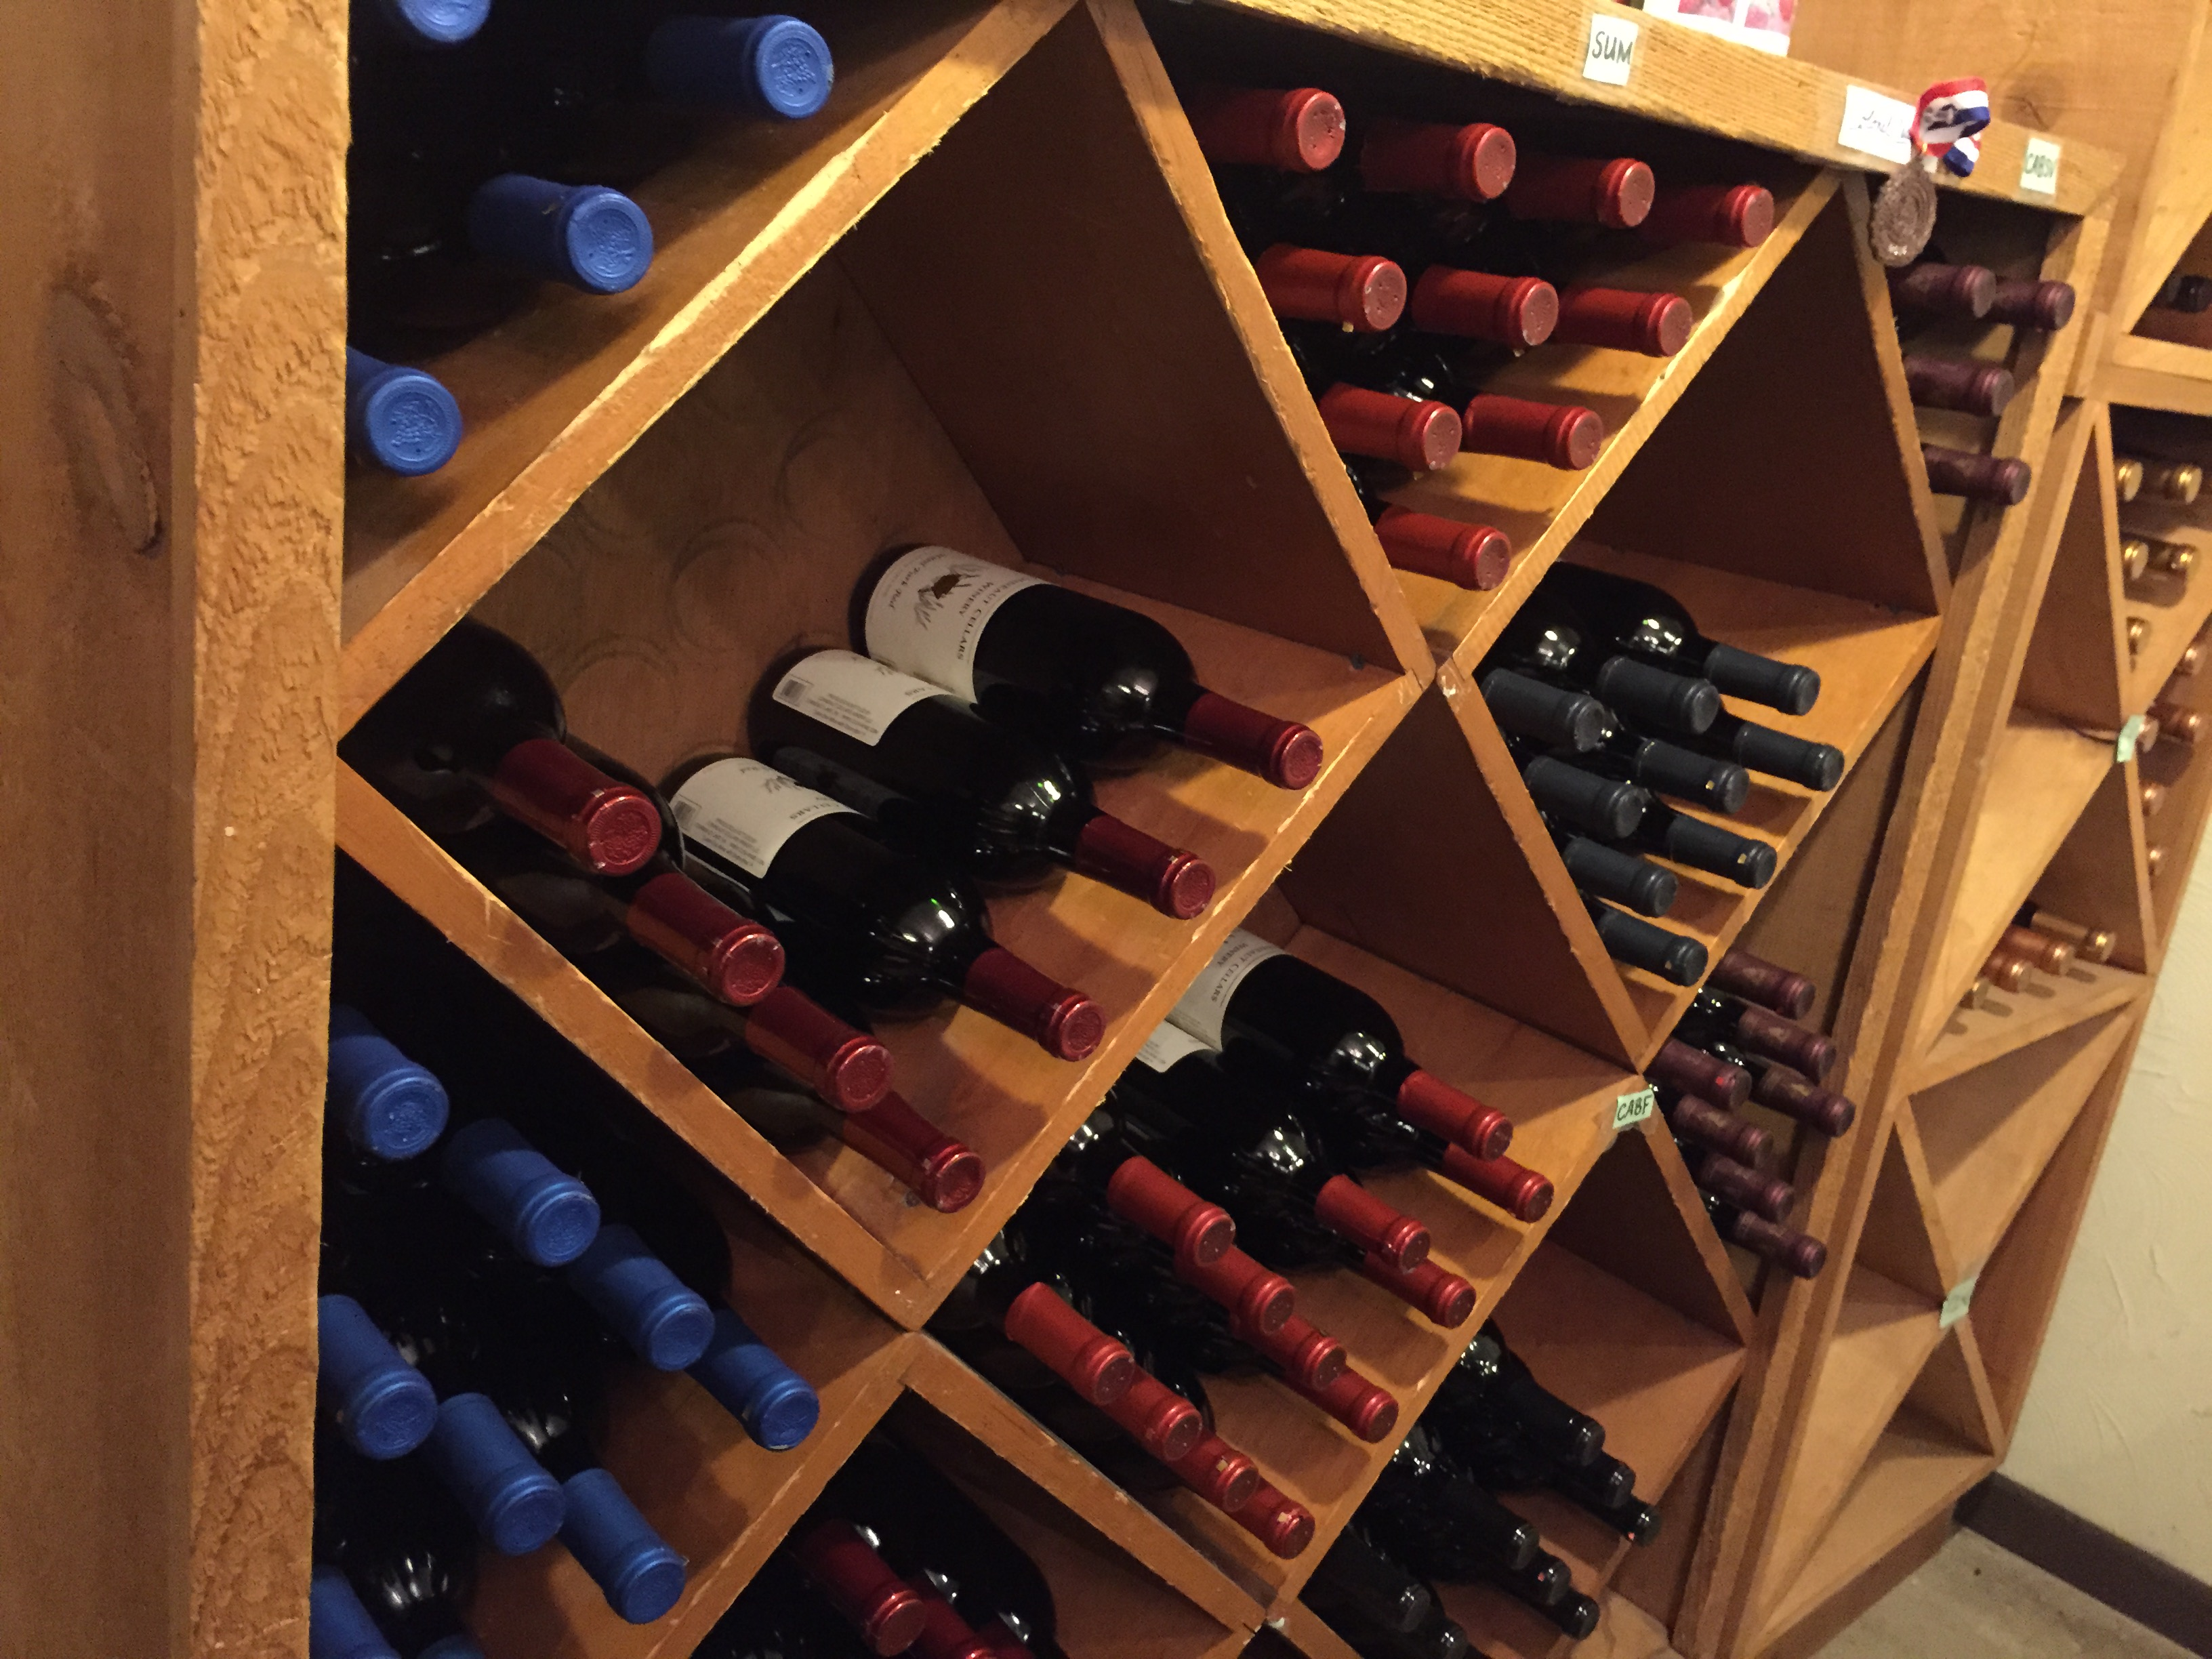 Various bottles of wine racked at Conneaut Cellars Winery & Distillery gift shop and tasting room.